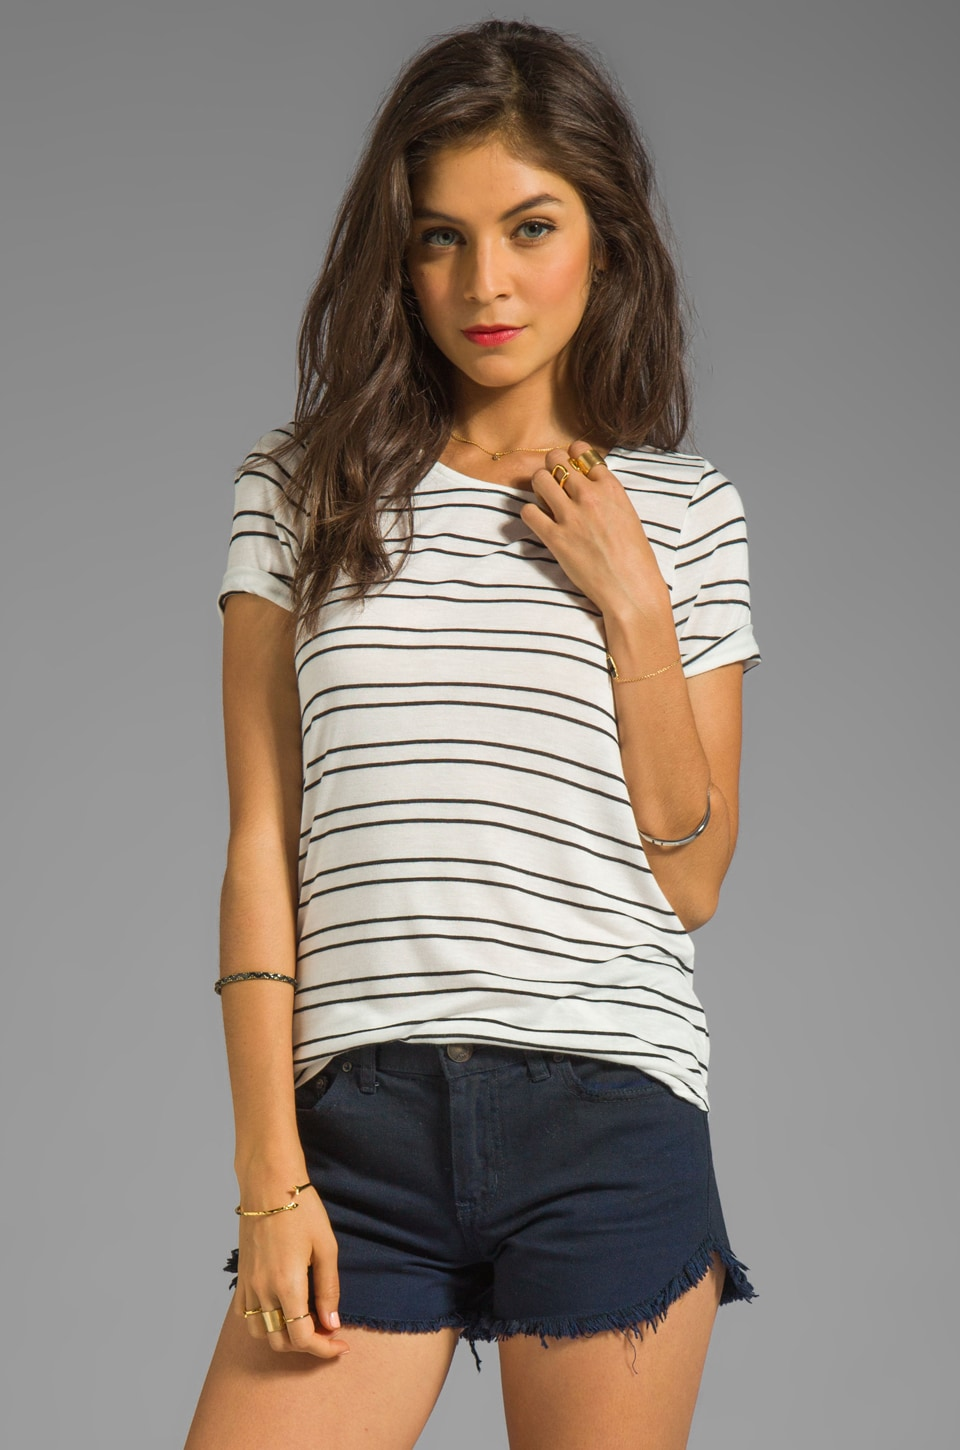 Whetherly Riley Twin Stripe Top in White/Black